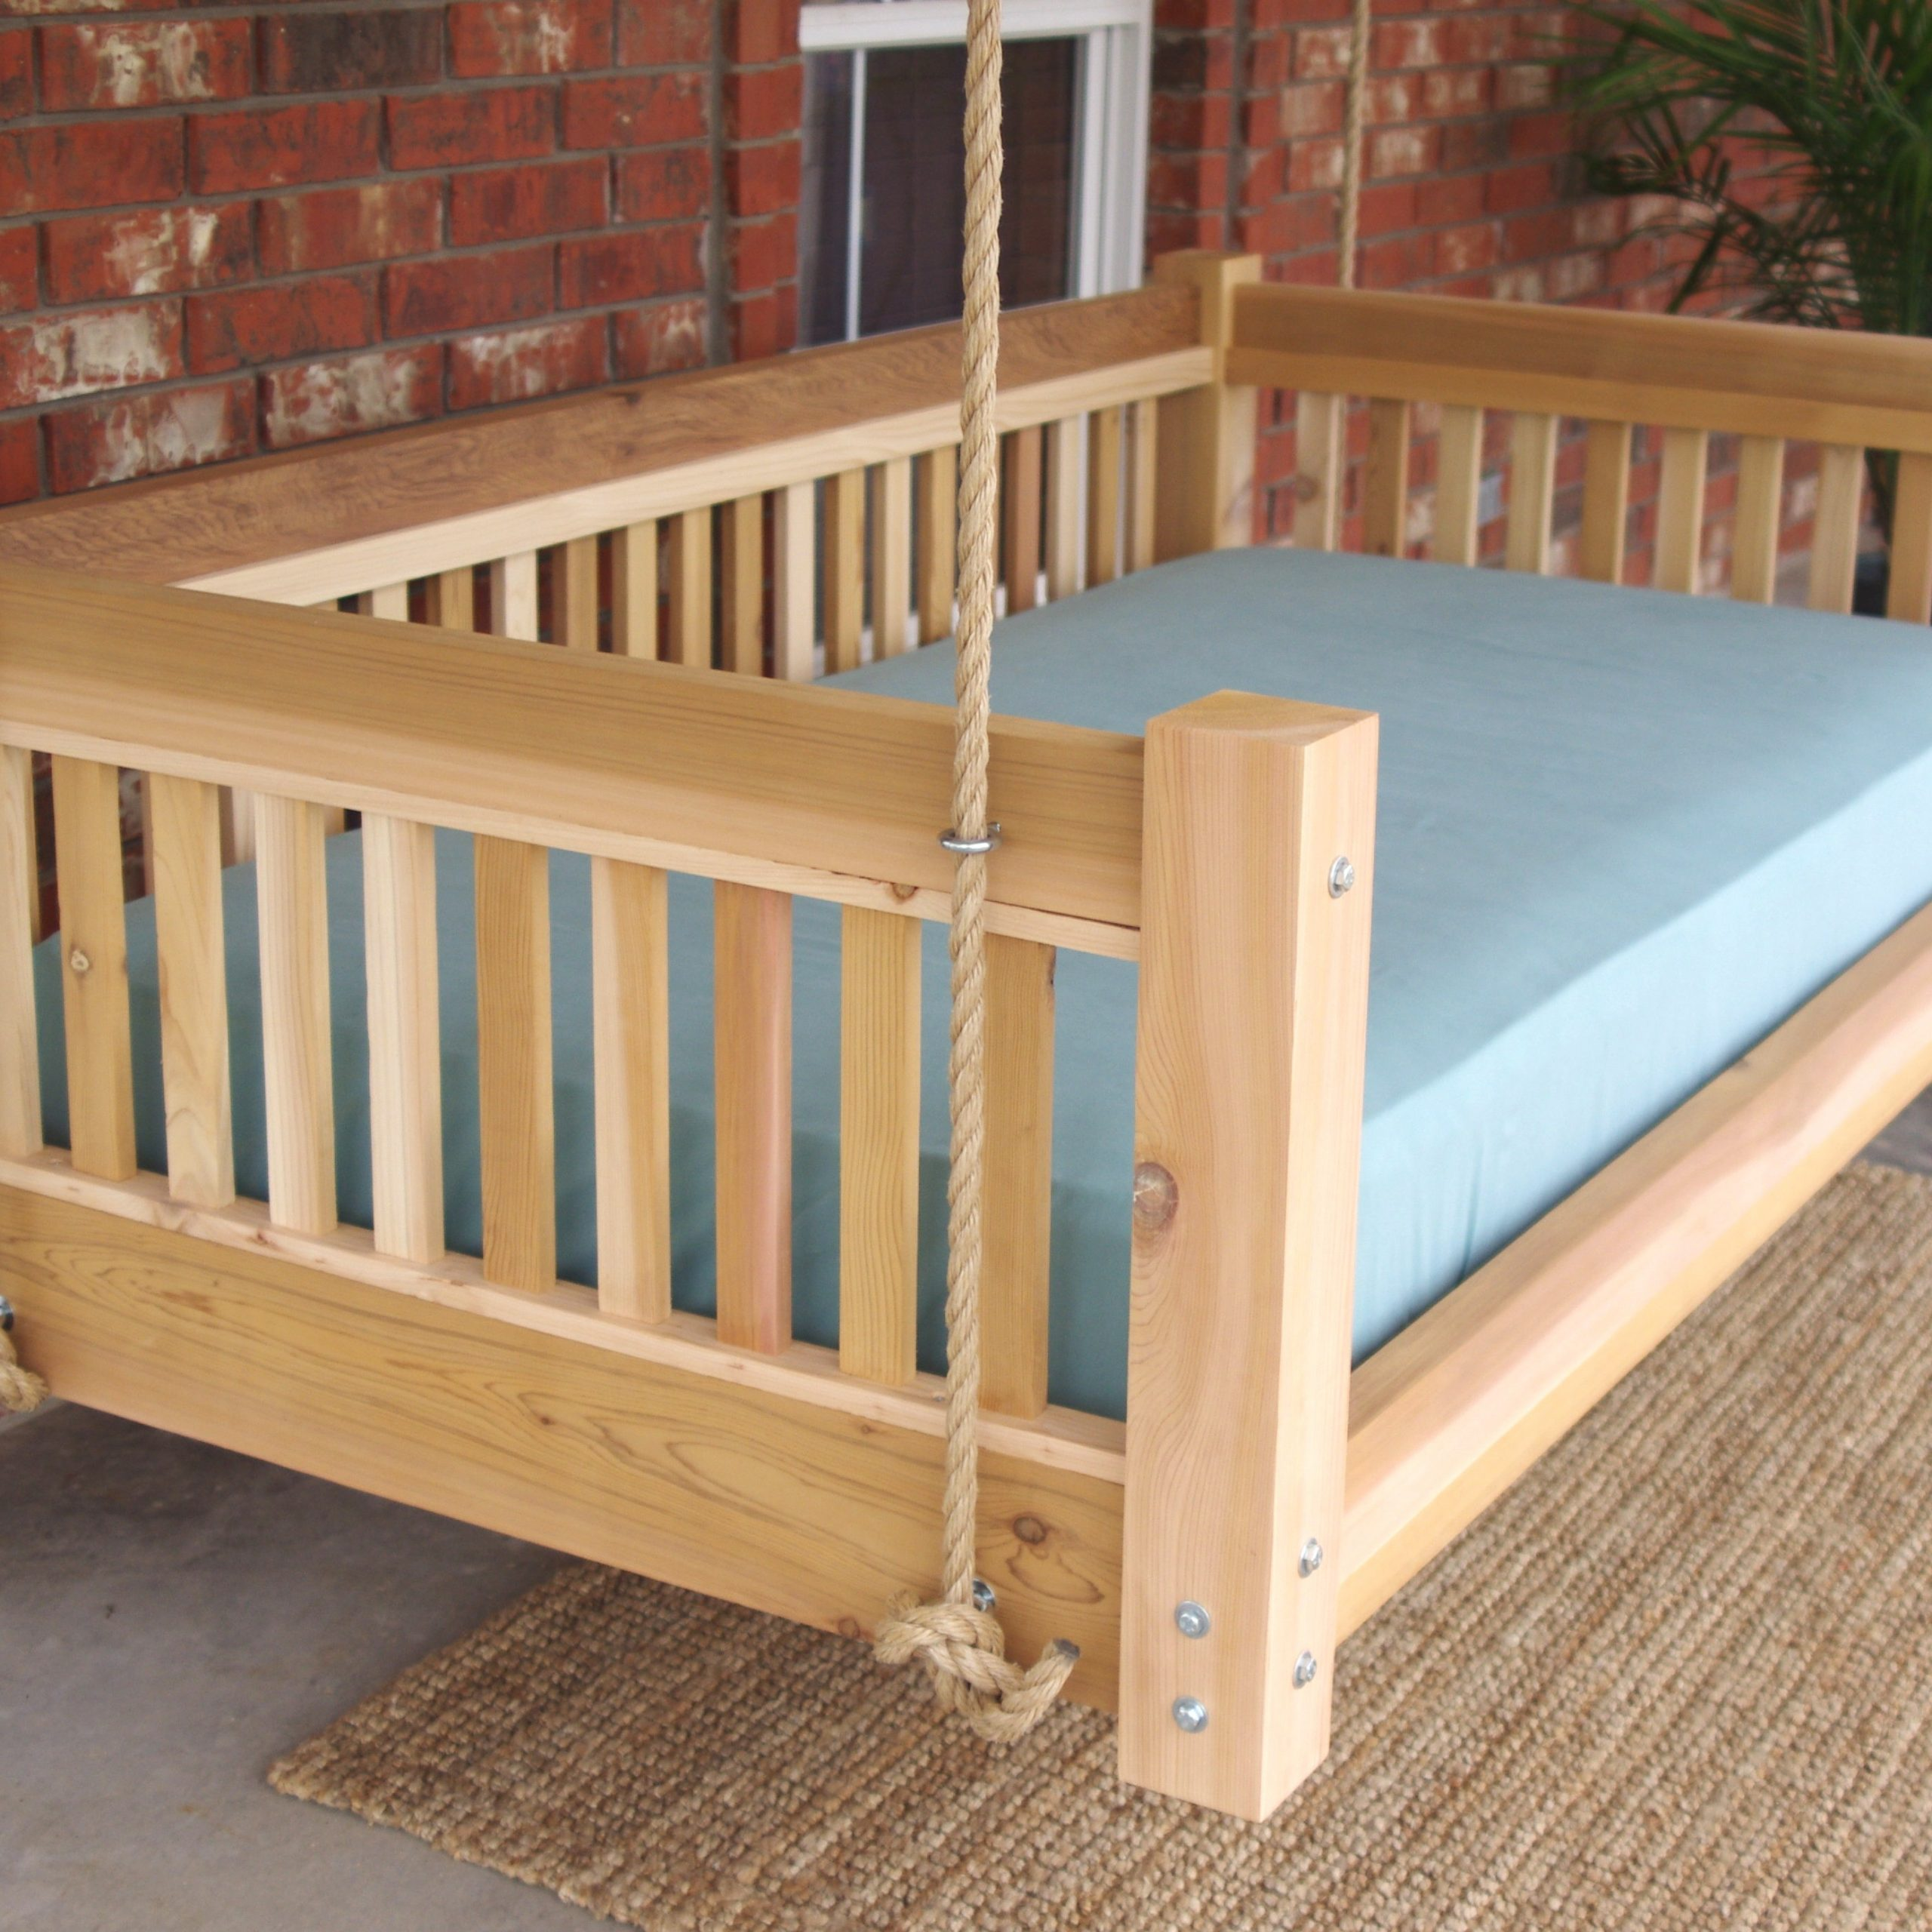 Promising Hanging Day Bed Millwood Pines Longbridge Cedar For Day Bed Porch Swings (Image 20 of 25)